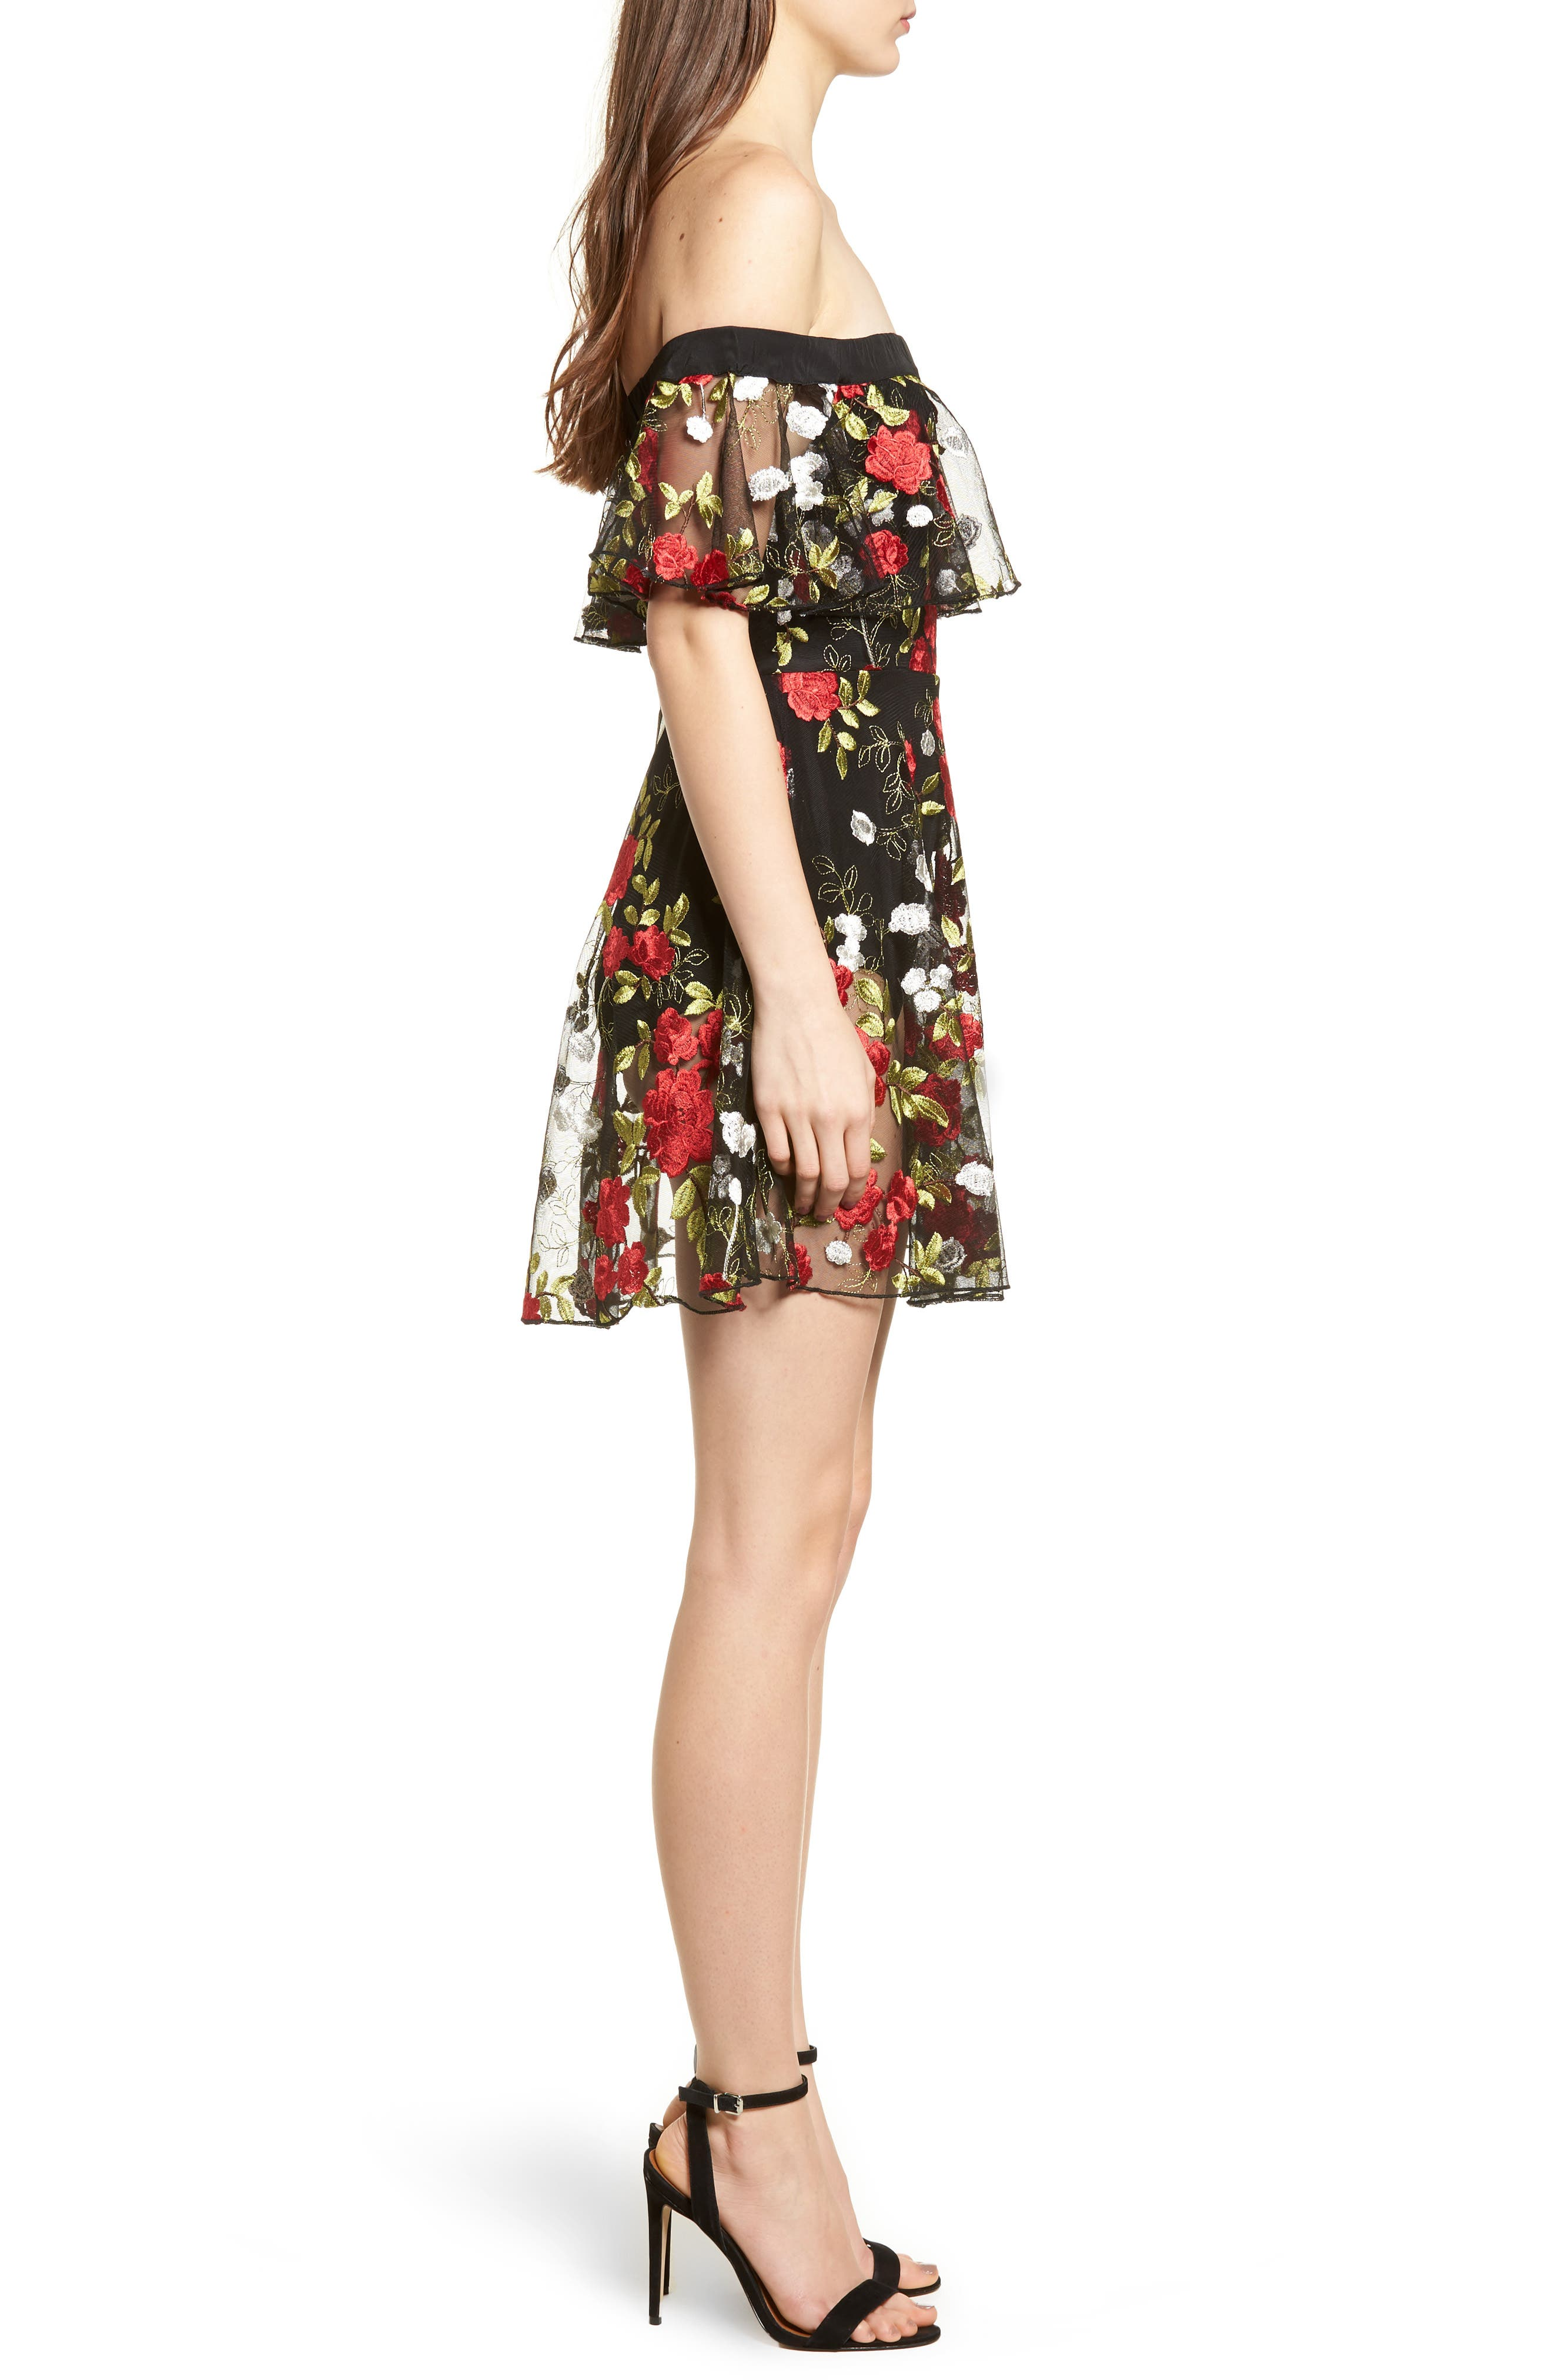 Erica Sheer Embroidered A-Line Dress,                             Alternate thumbnail 3, color,                             HALCYON